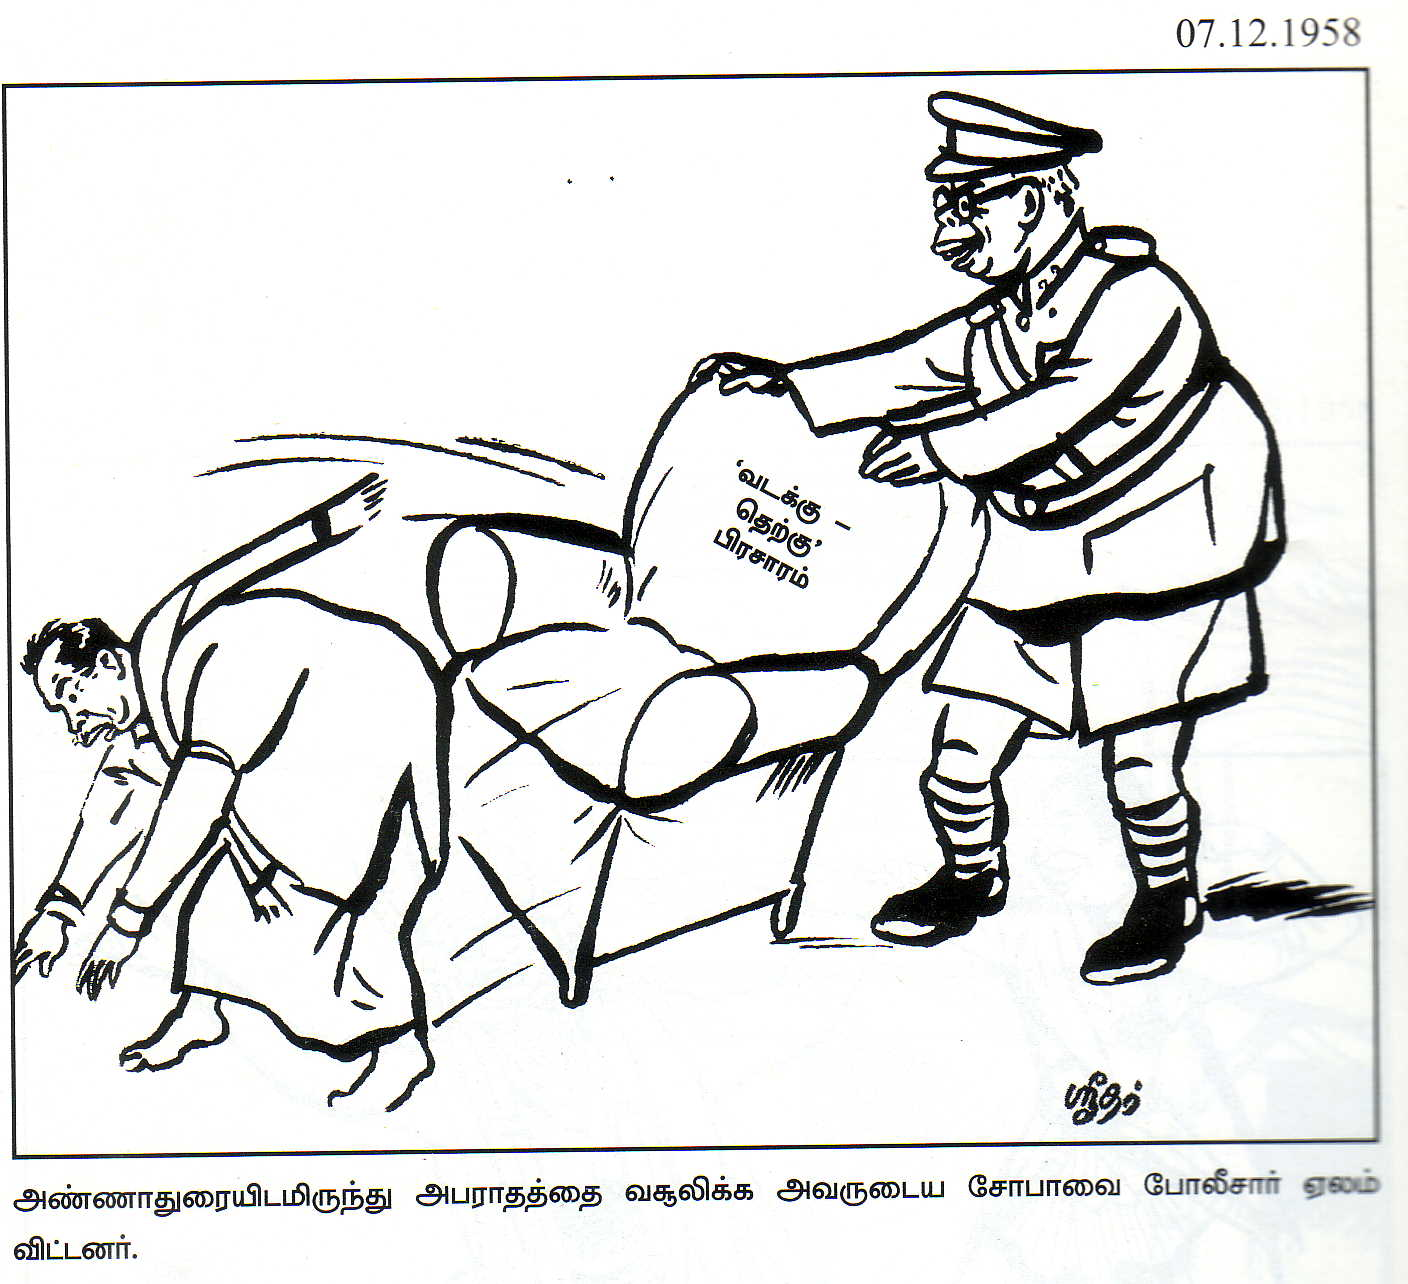 Anna punished for Dravida propaganda cartoon 1958